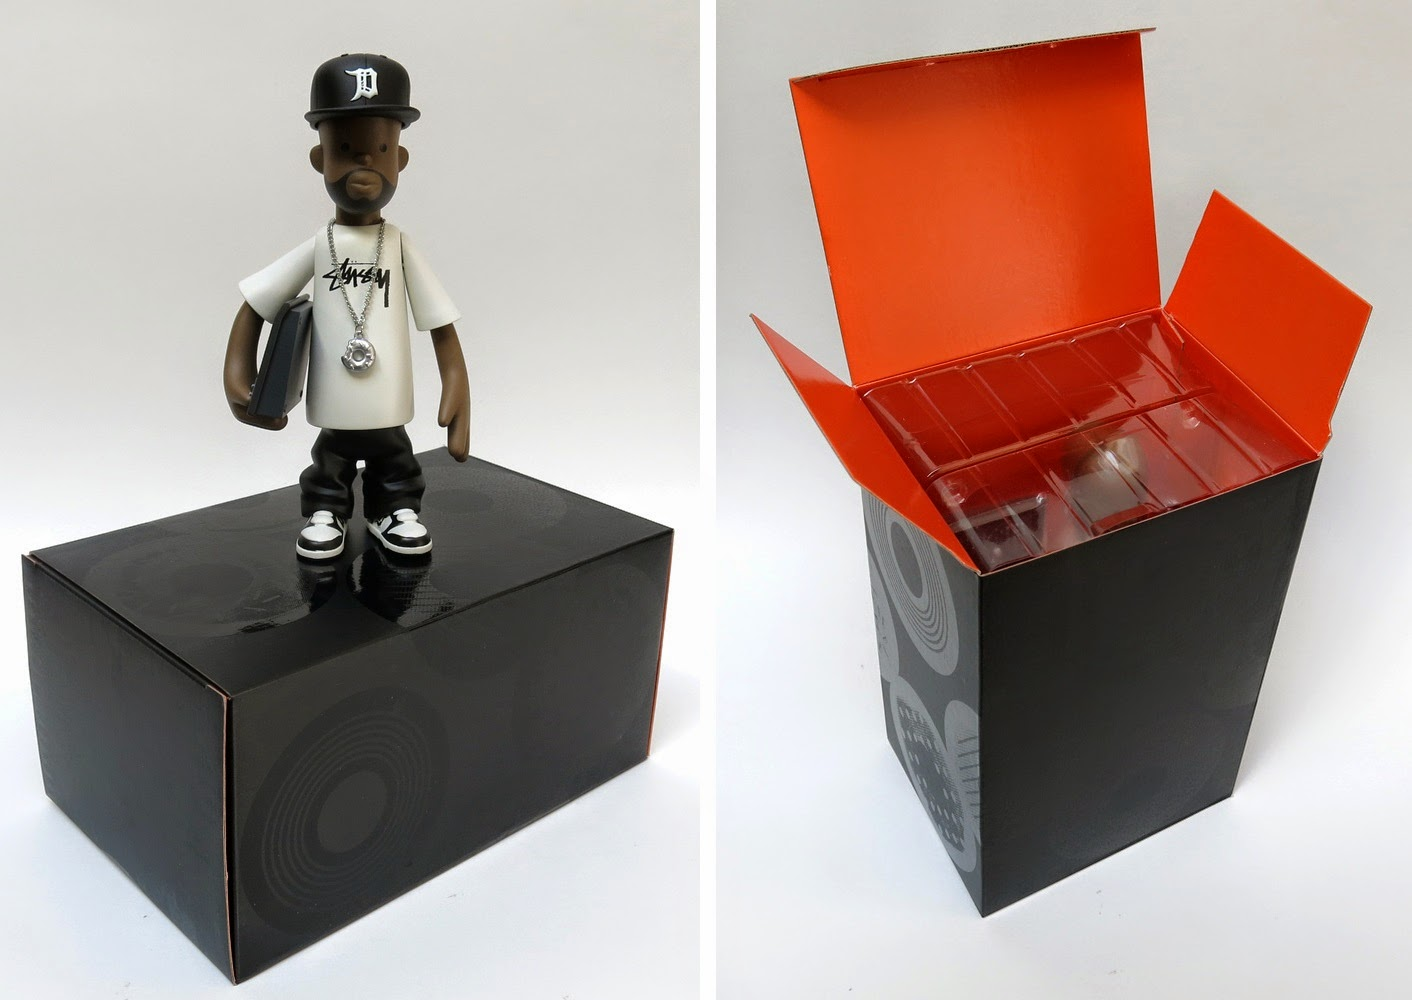 J Dilla Vinyl Figure by Pay Jay